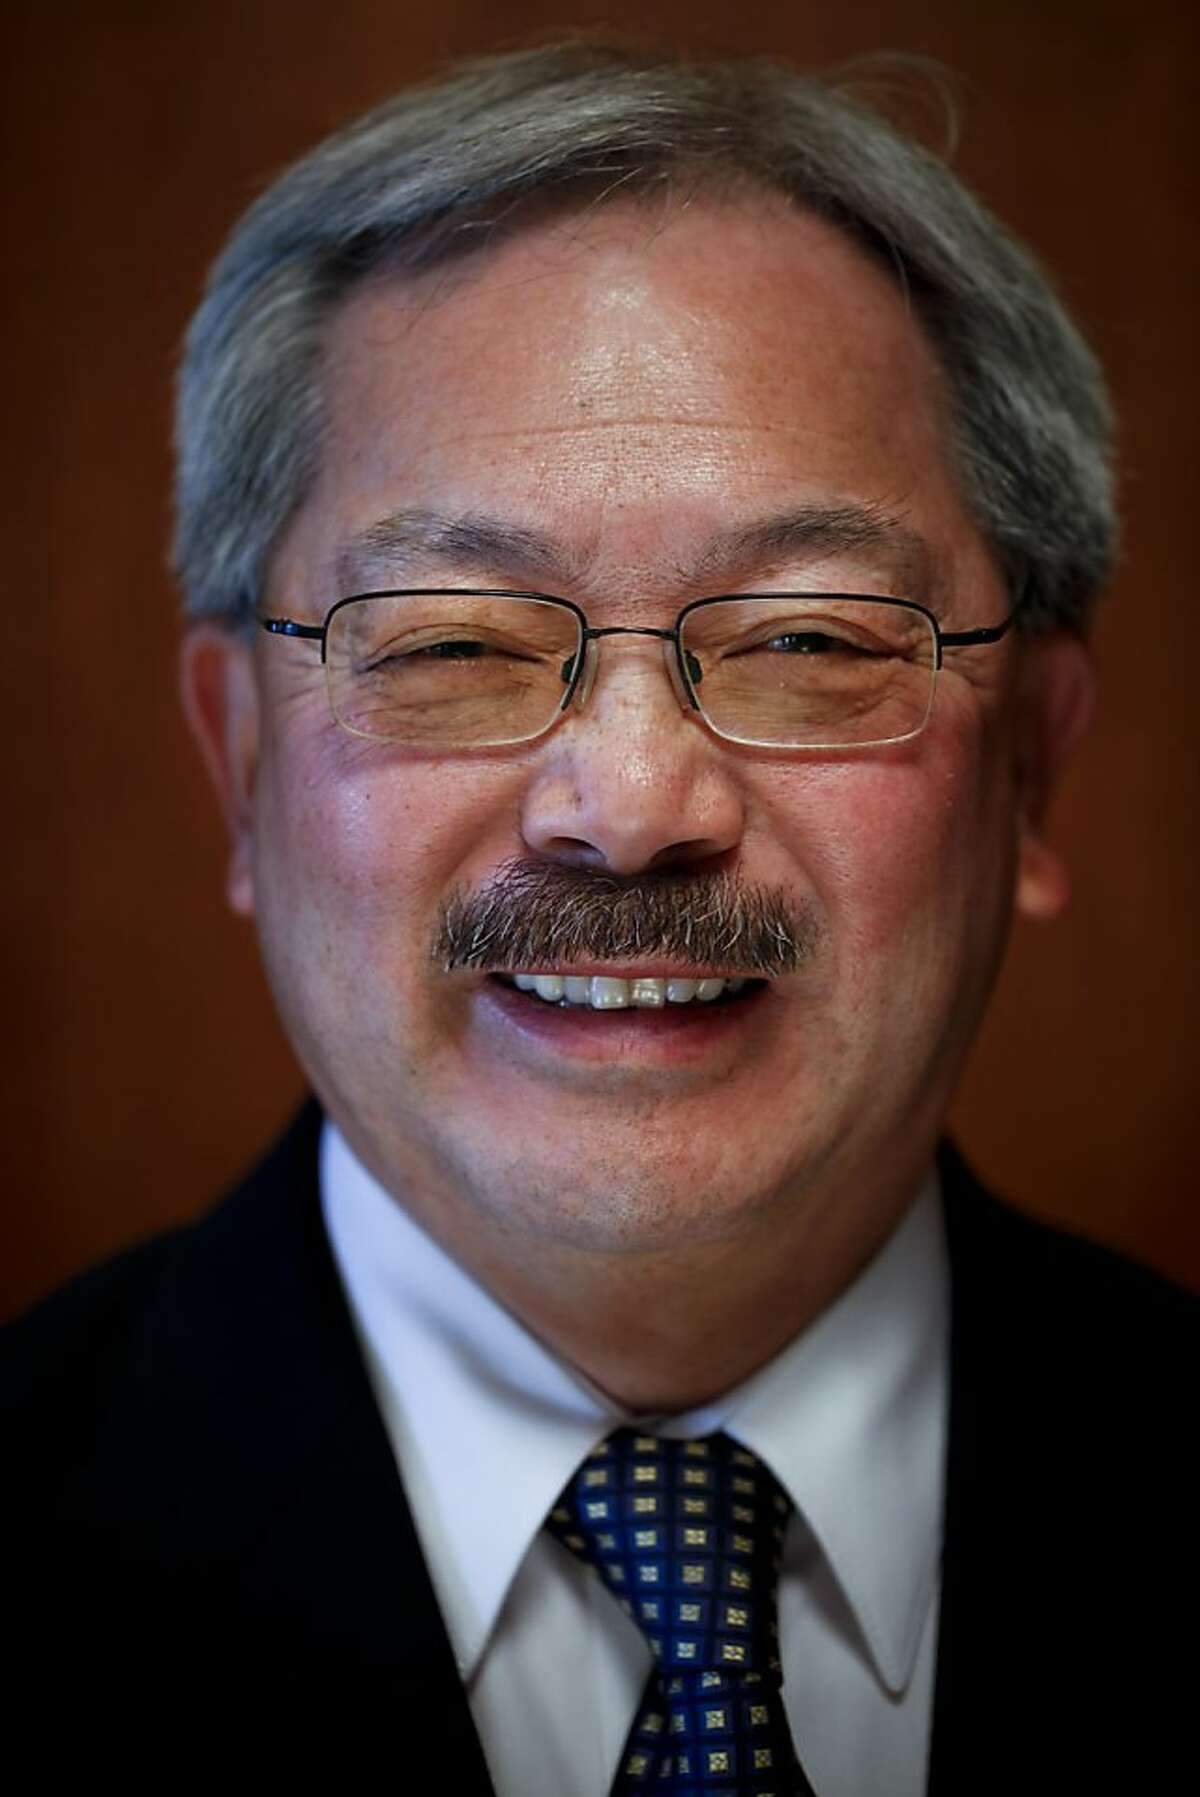 Mayor Ed Lee is seen in his SF City Hall office on Friday, Dec. 28, 2012 in San Francisco, Calif.